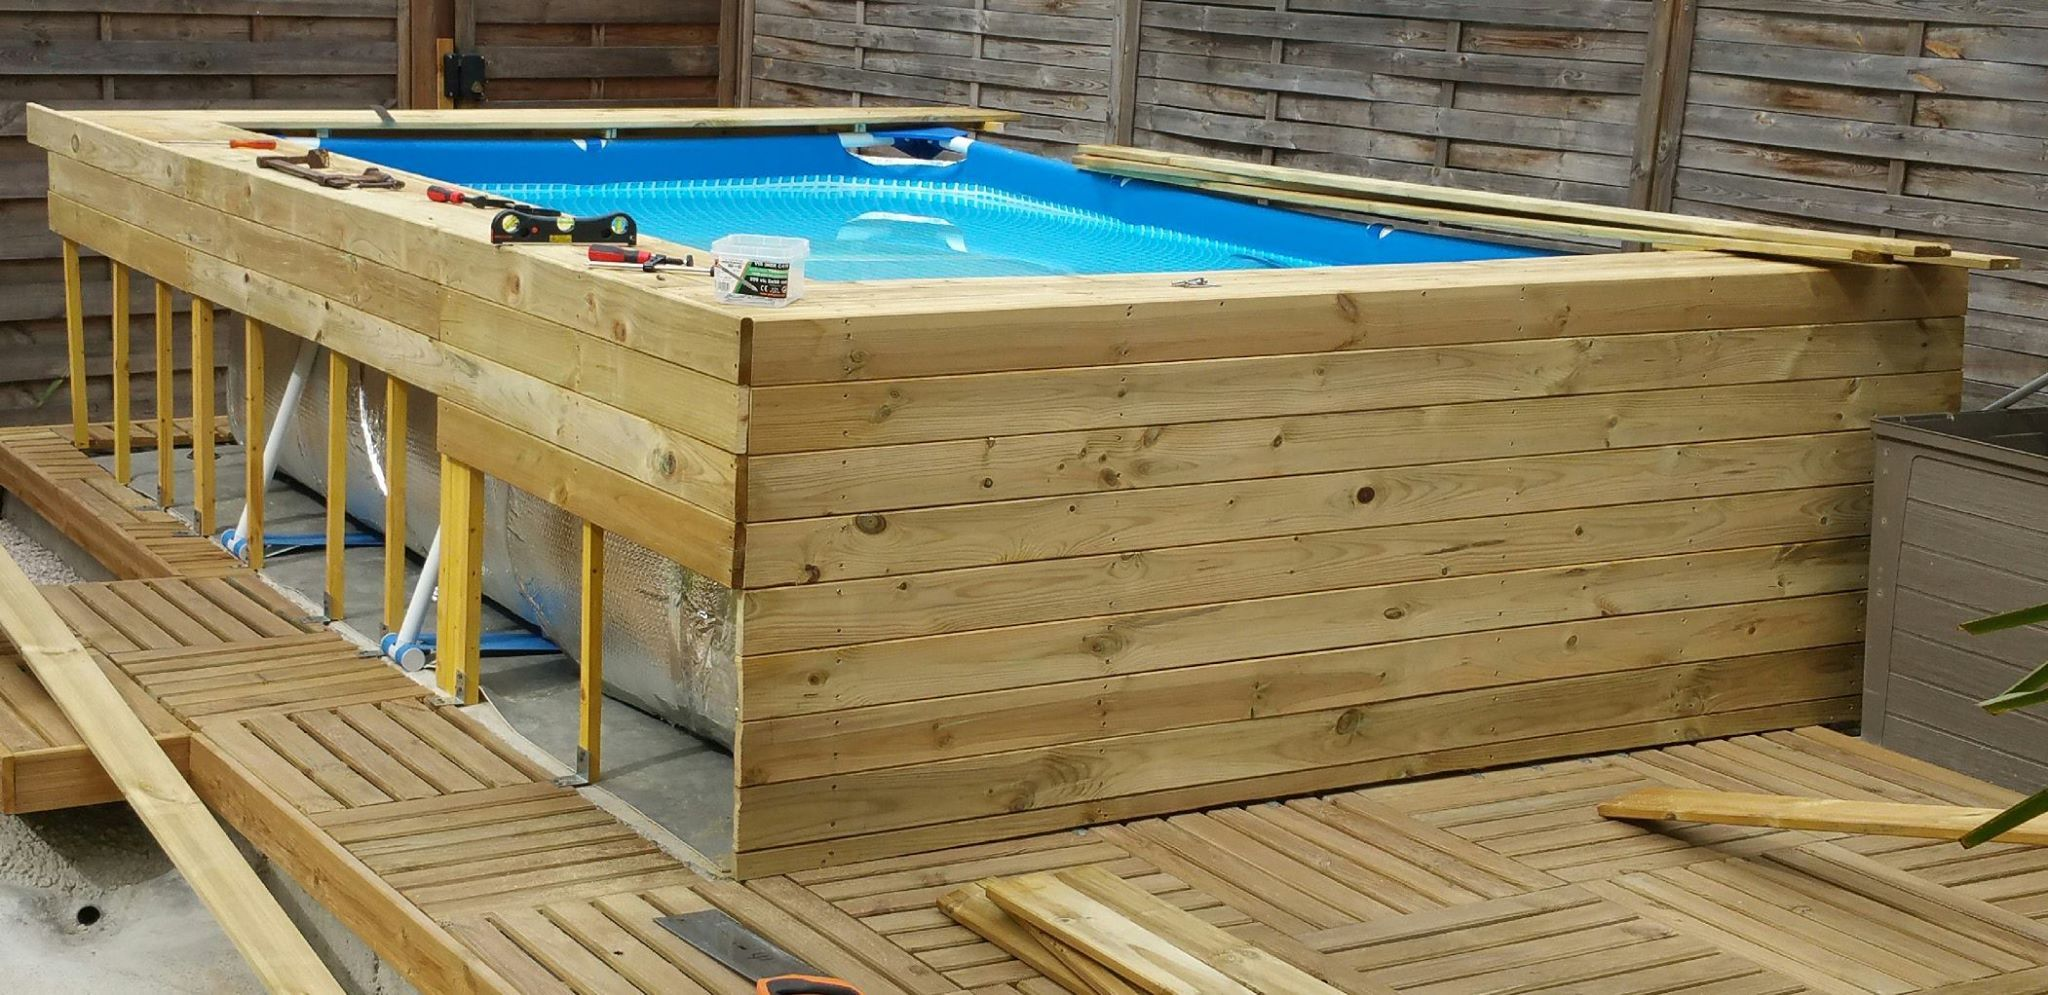 Pingl par pitch38 sur piscine en 2019 habillage - Piscine rectangulaire hors sol intex ...